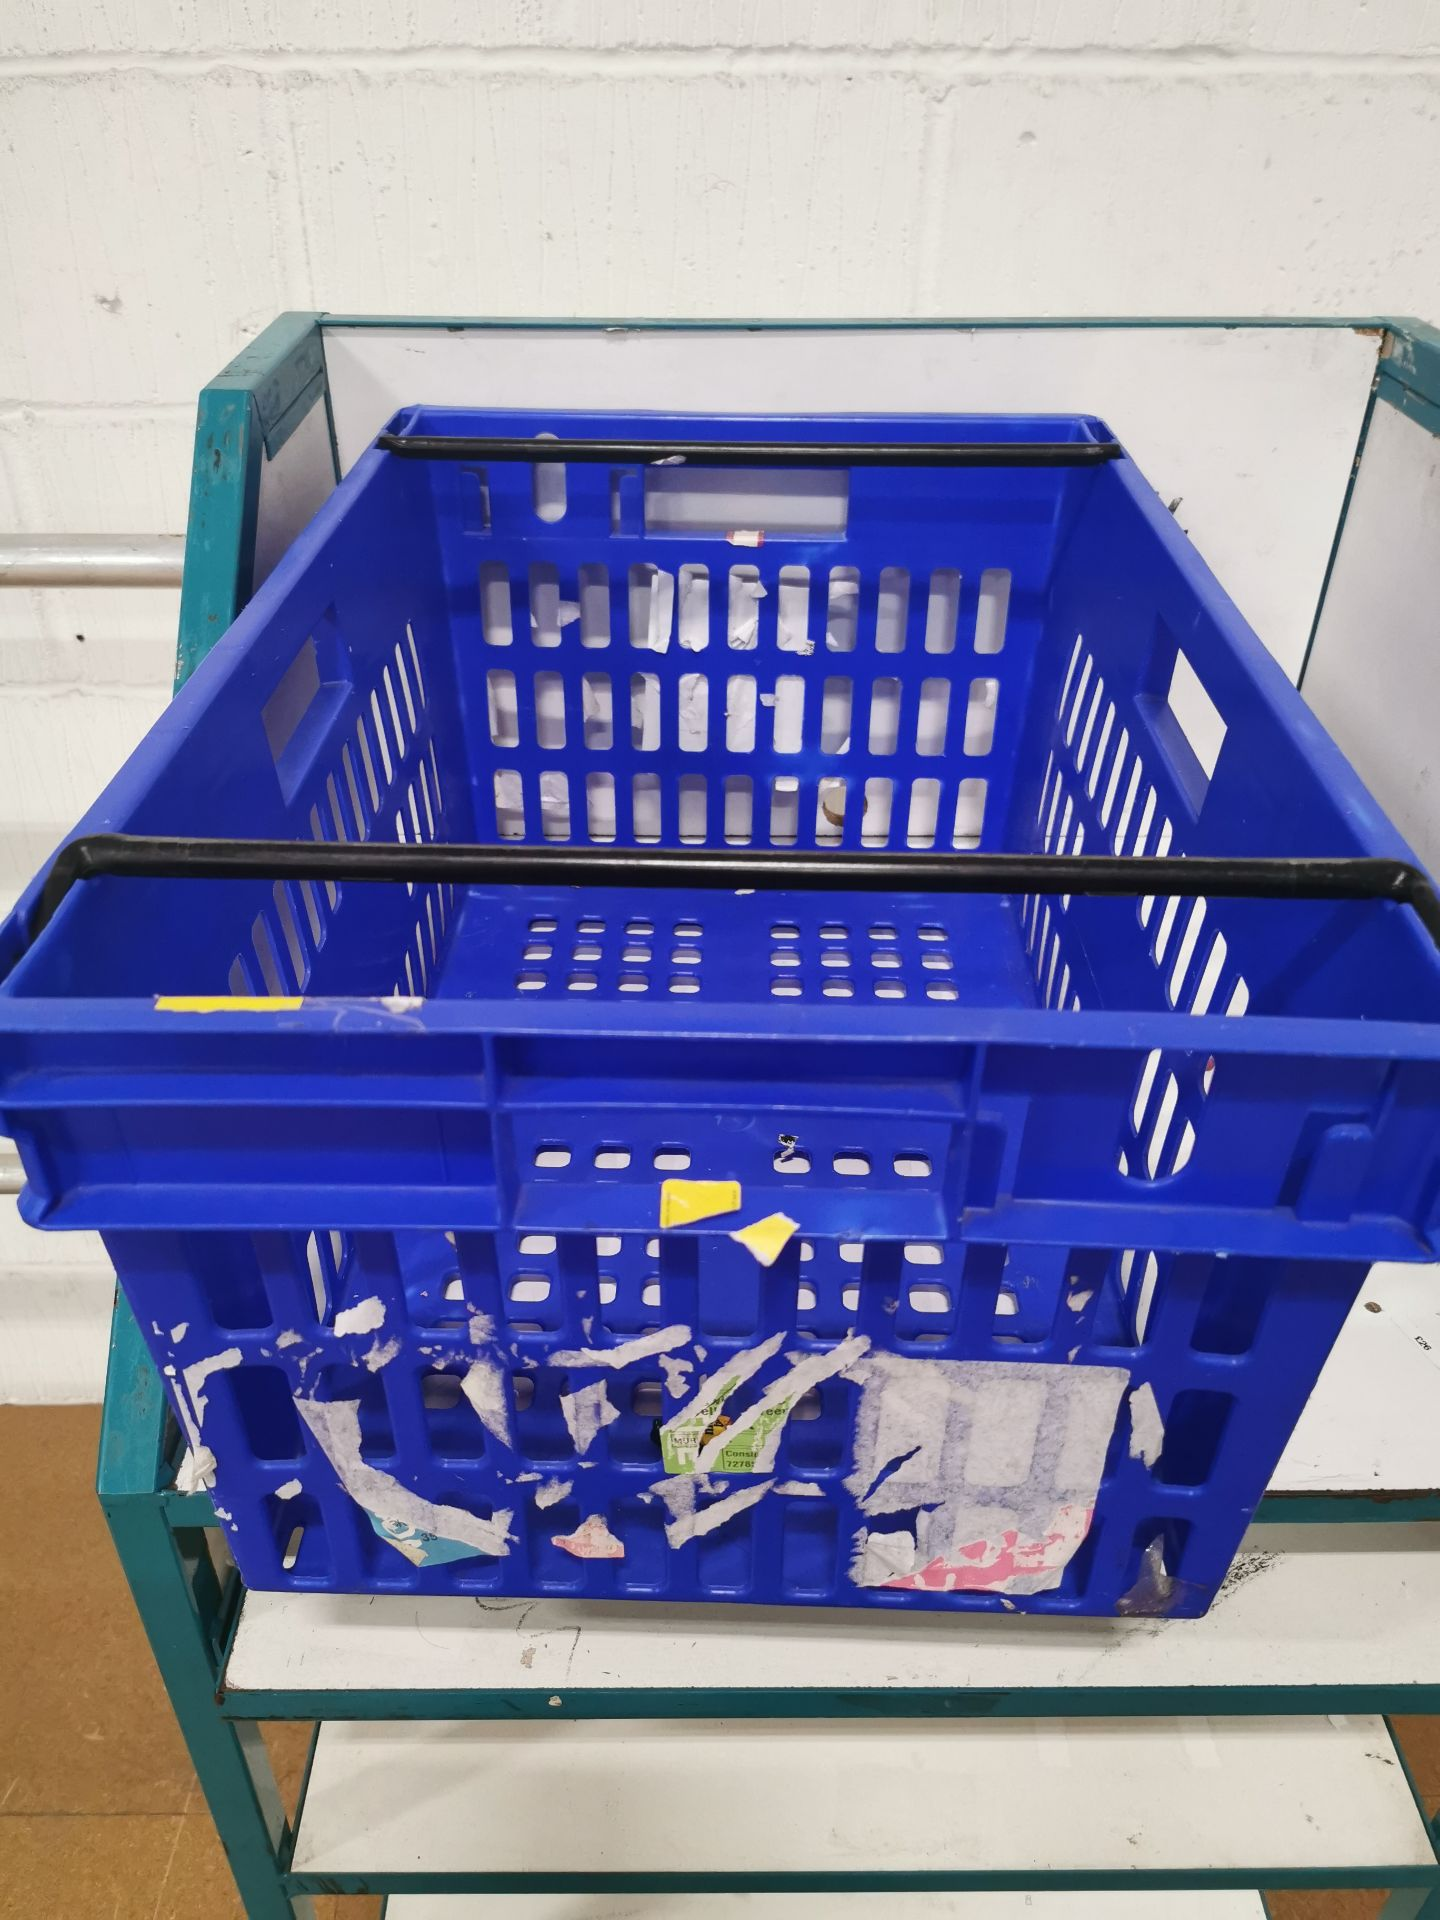 Pallet of 60 x 55Ltr Ventilated stacking & nesting crates/totes from M&S.